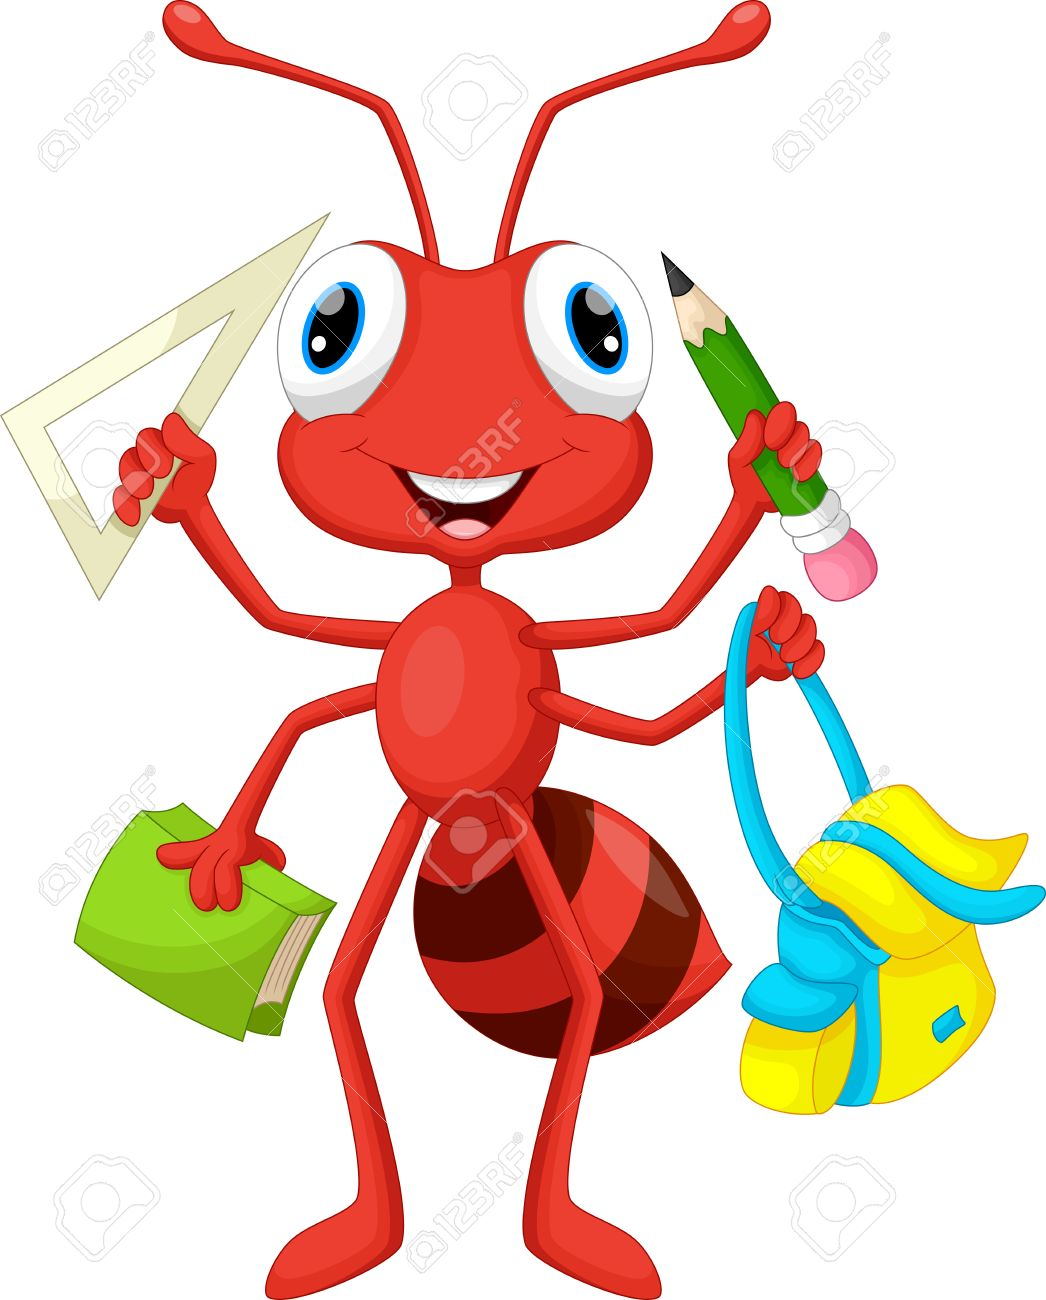 Ant with school supplies - 49256147